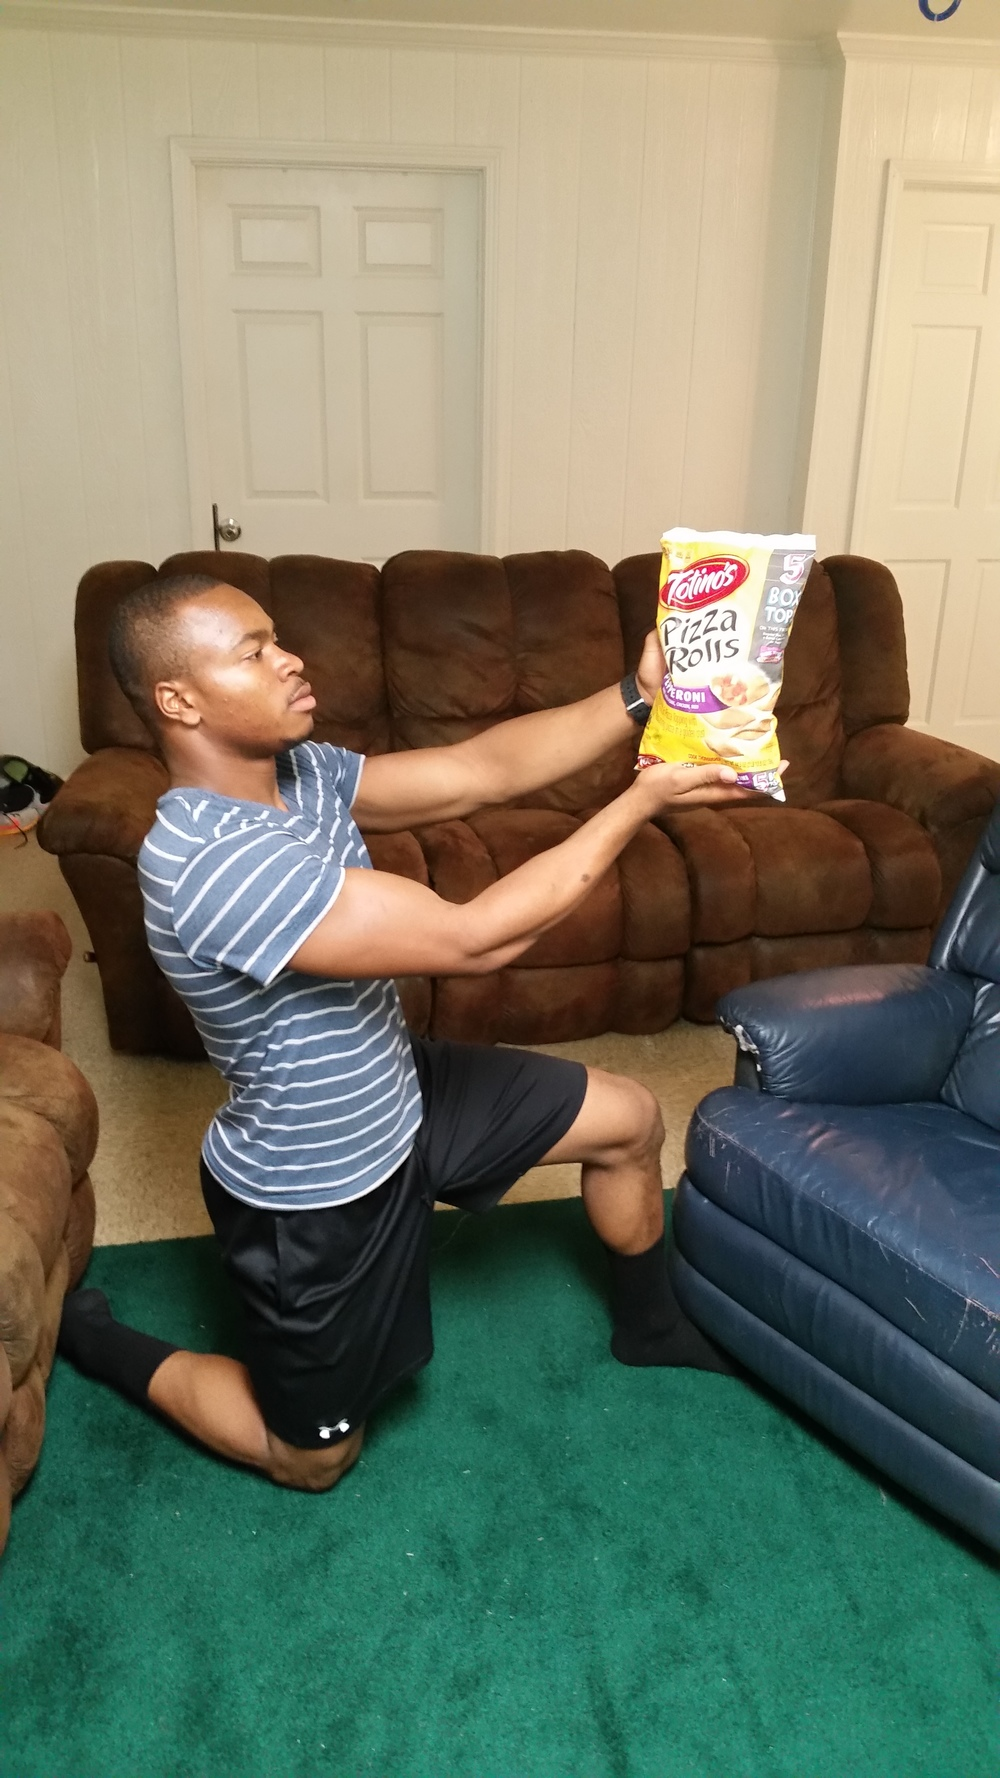 Tyler Williams holds pizza pockets in high esteem